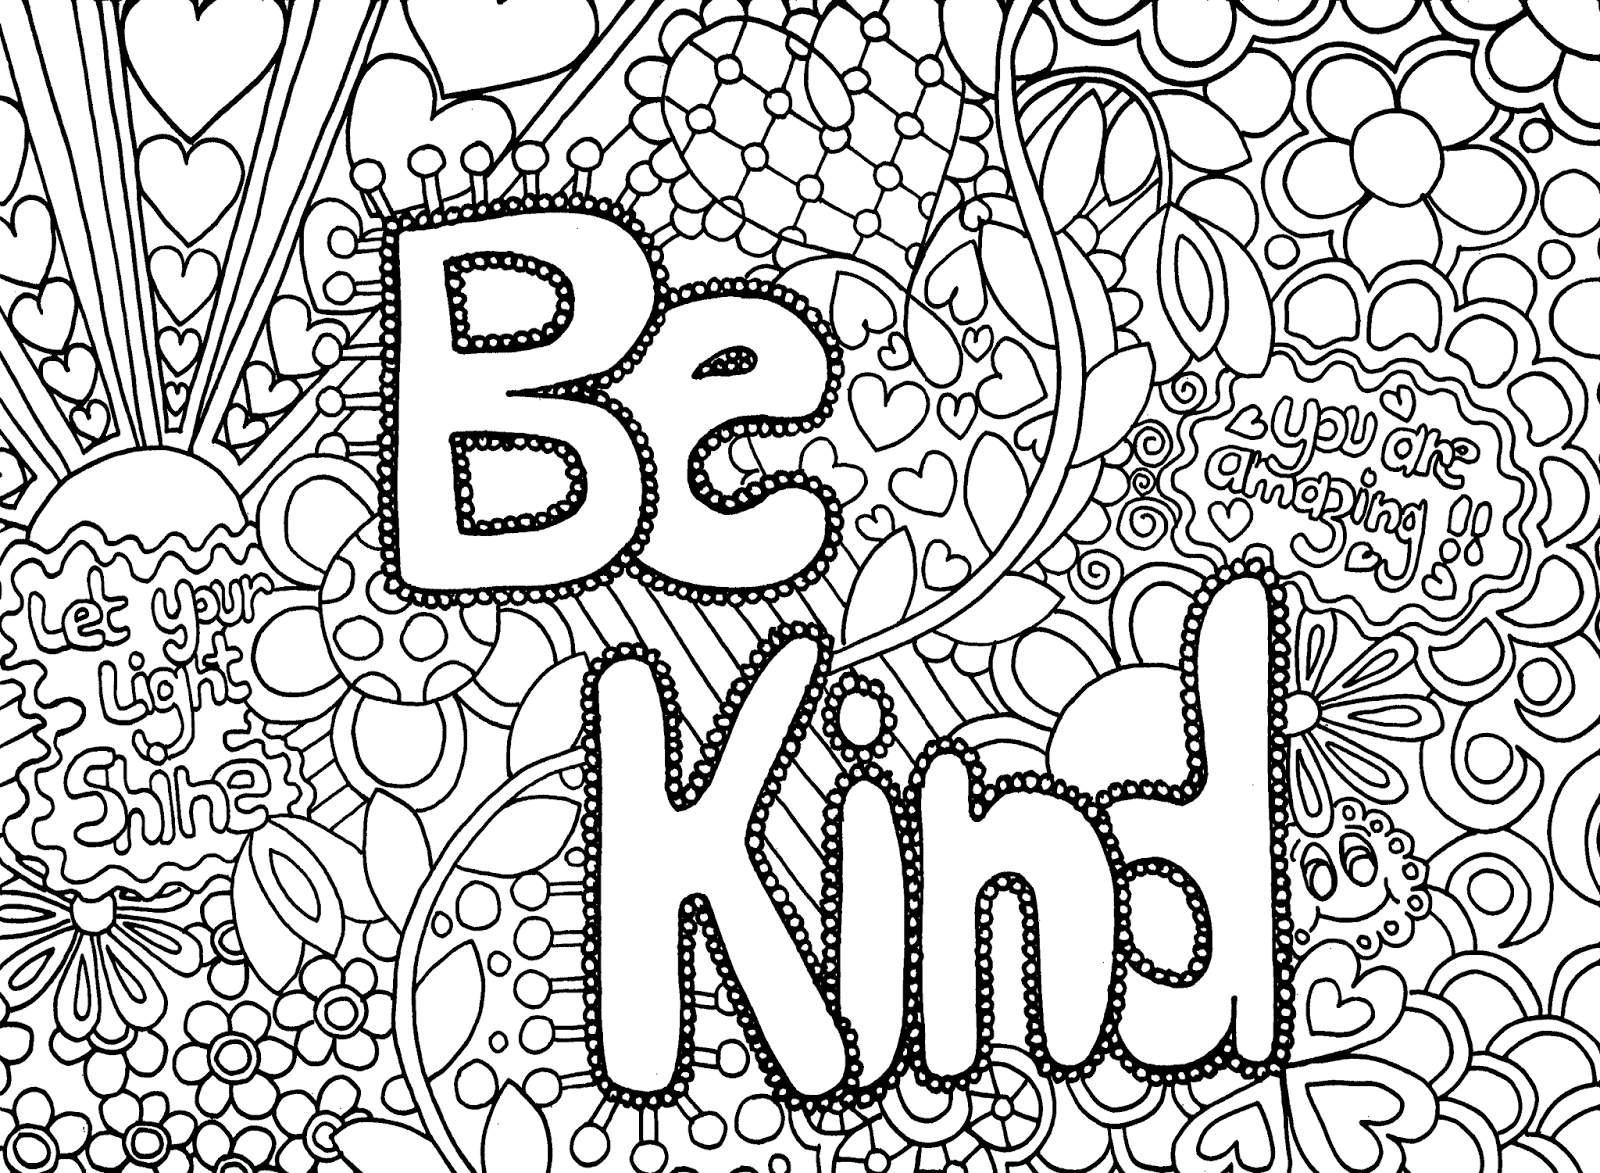 coloring pictures for adults cute coloring pages best coloring pages for kids coloring adults pictures for